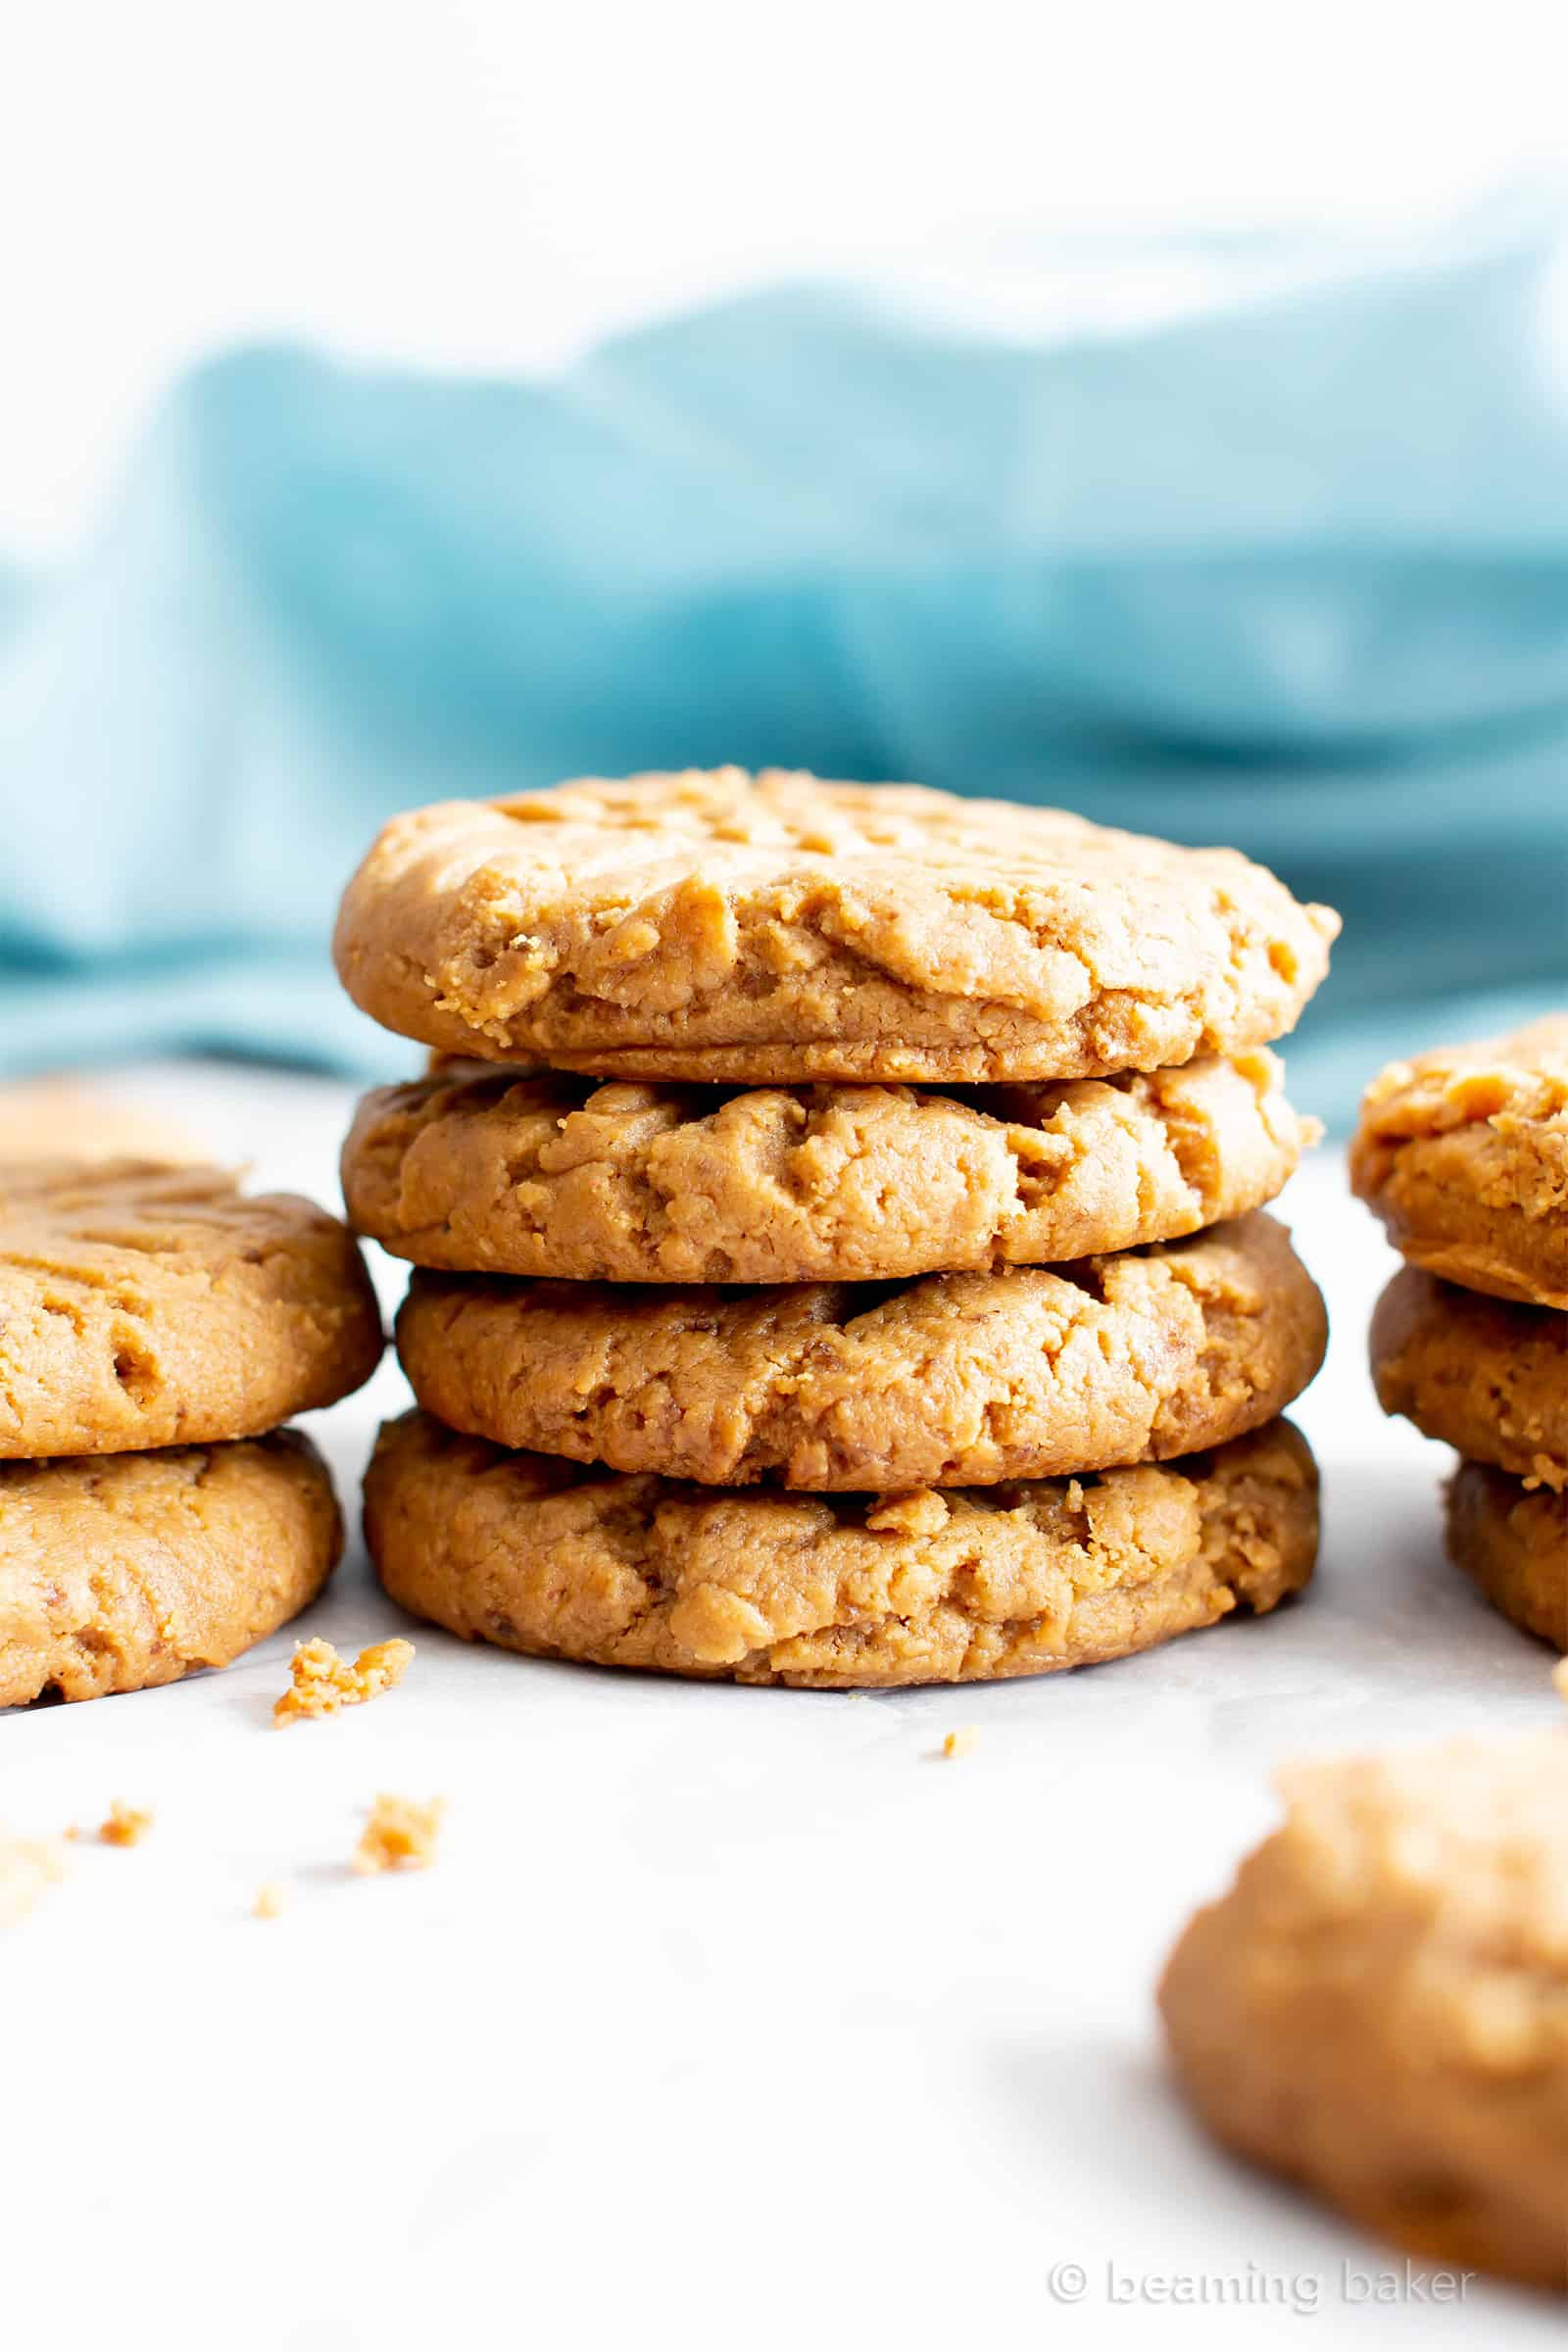 Soft Healthy Peanut Butter Cookies: this 4 ingredient Gluten Free peanut butter cookies recipe yields soft & healthy peanut butter cookies! The best GF peanut butter cookies—vegan, dairy-free and refined sugar free. Oil-Free, Grain Free. #PeanutButter #Cookies #GlutenFree #Healthy | Recipe at BeamingBaker.com